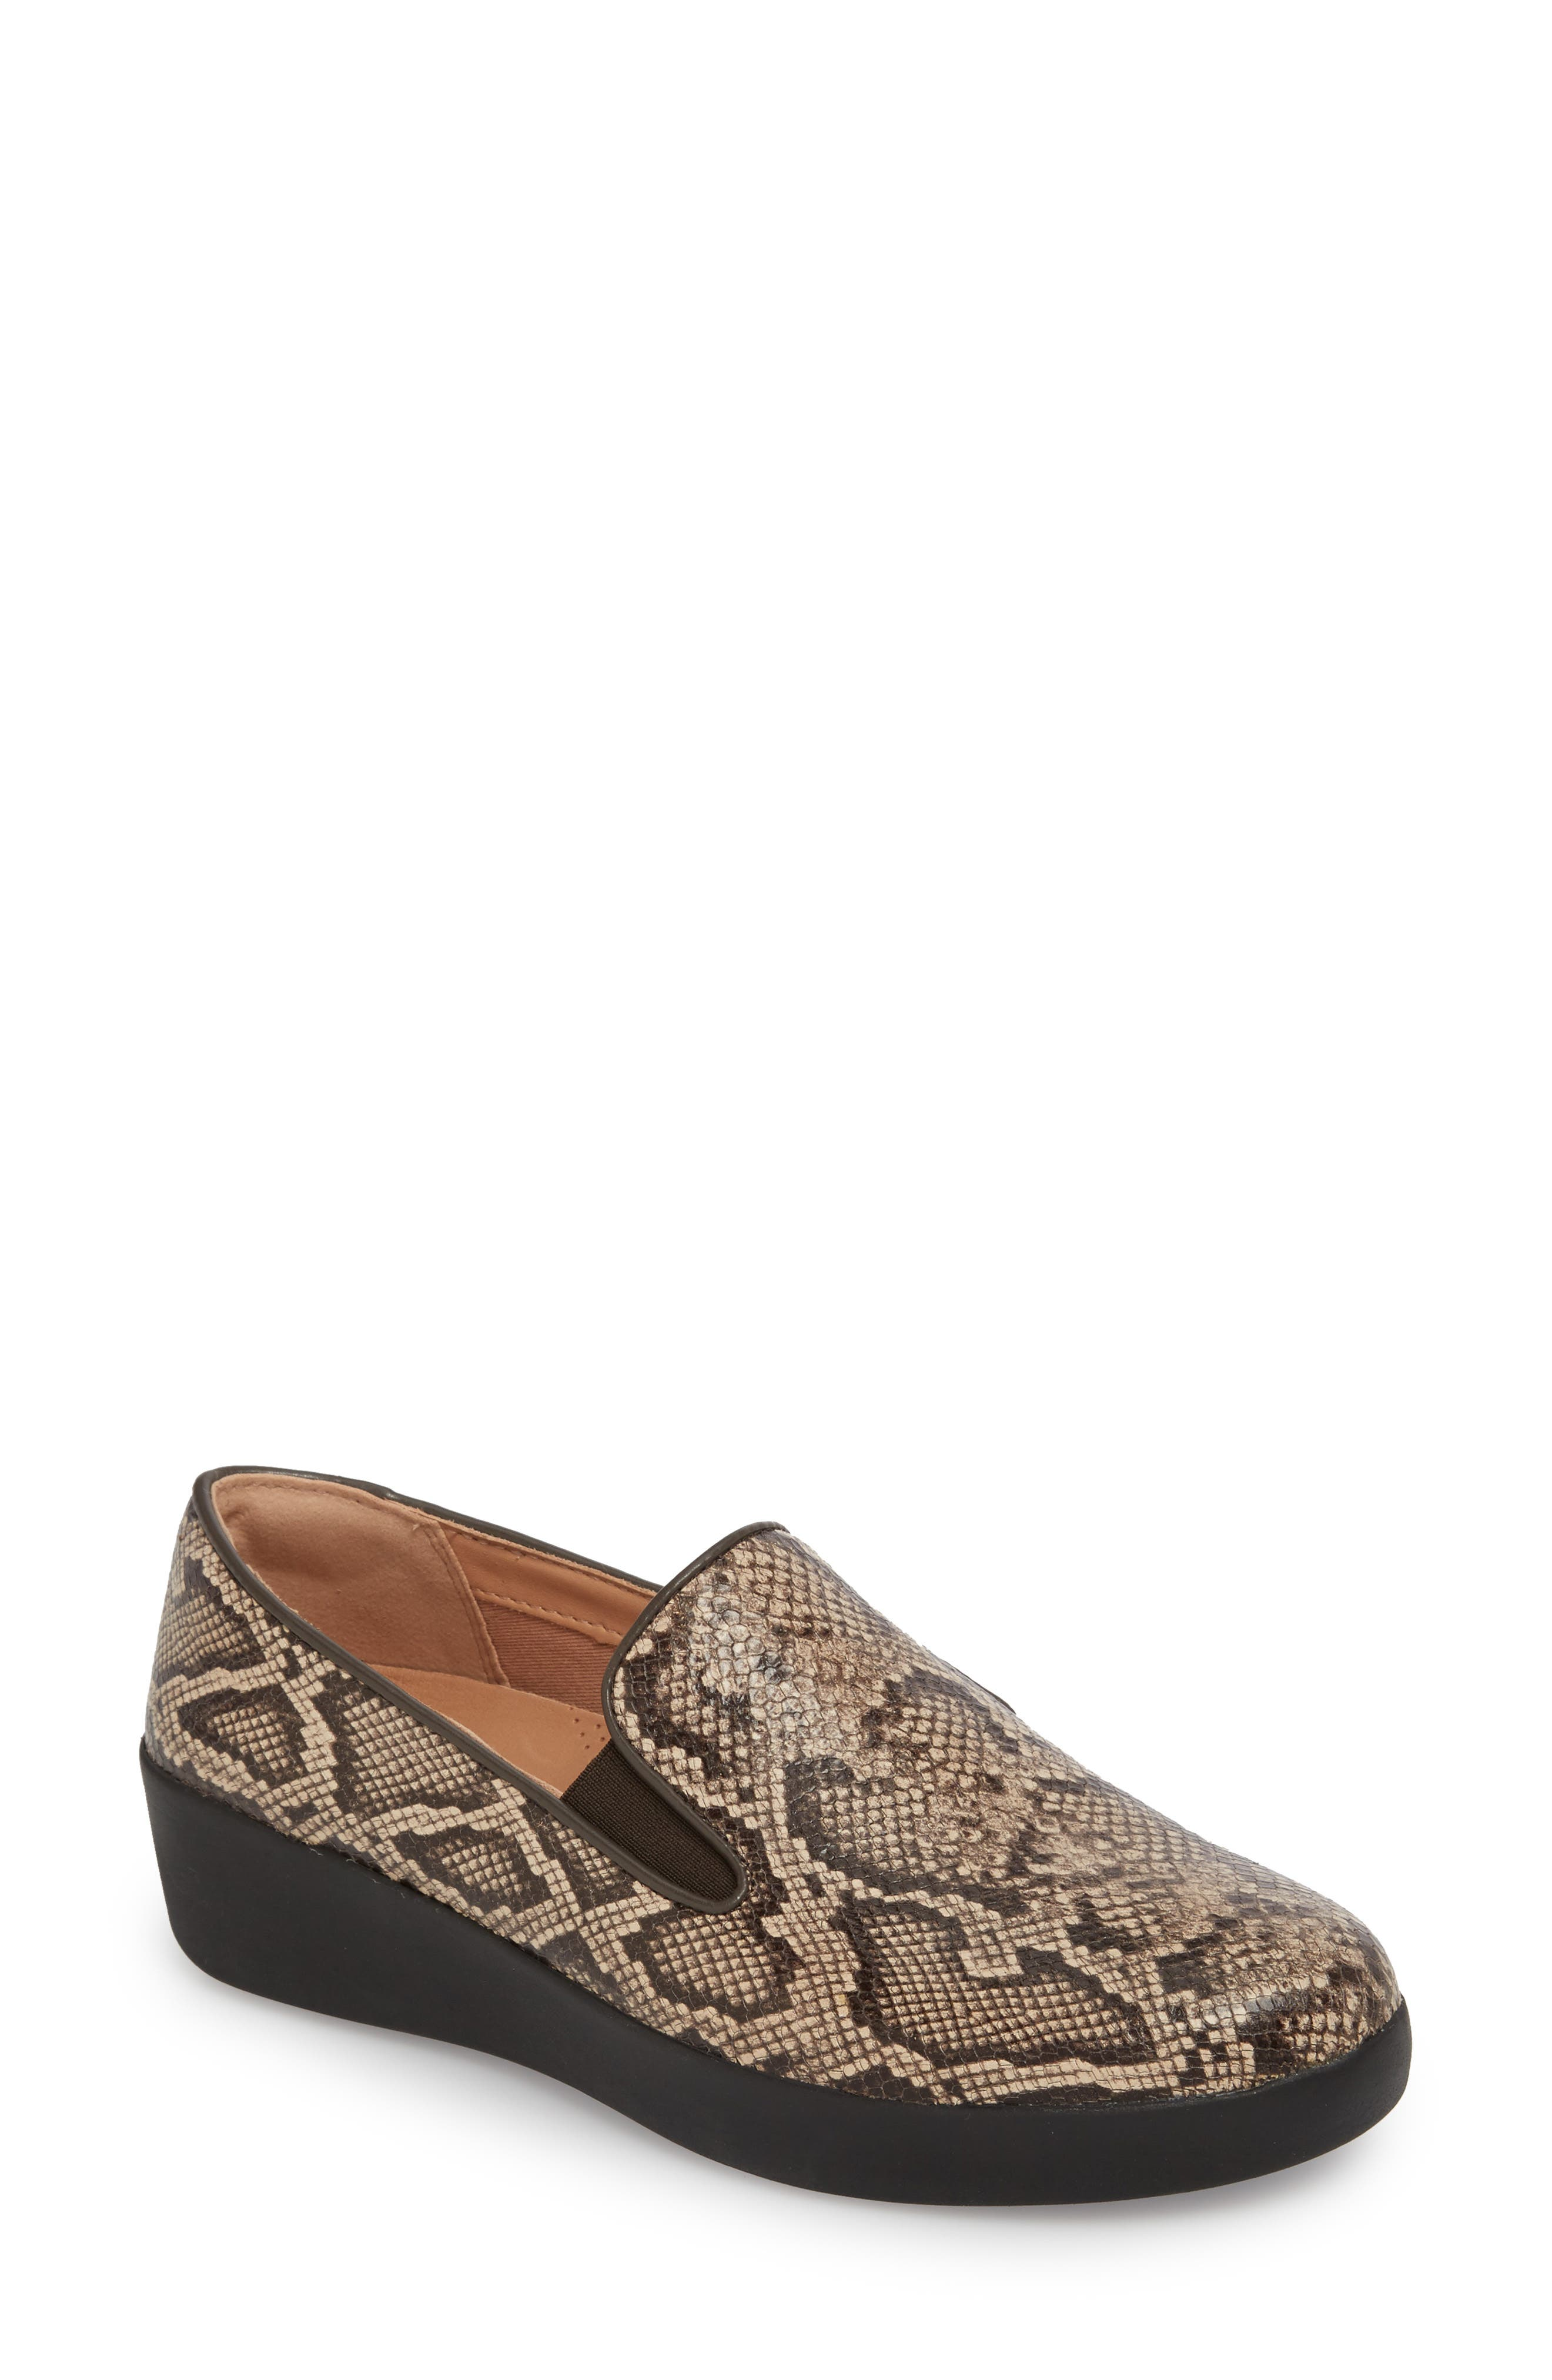 SuperSkate<sup>™</sup> Loafer,                             Main thumbnail 1, color,                             Taupe Snake Print Leather